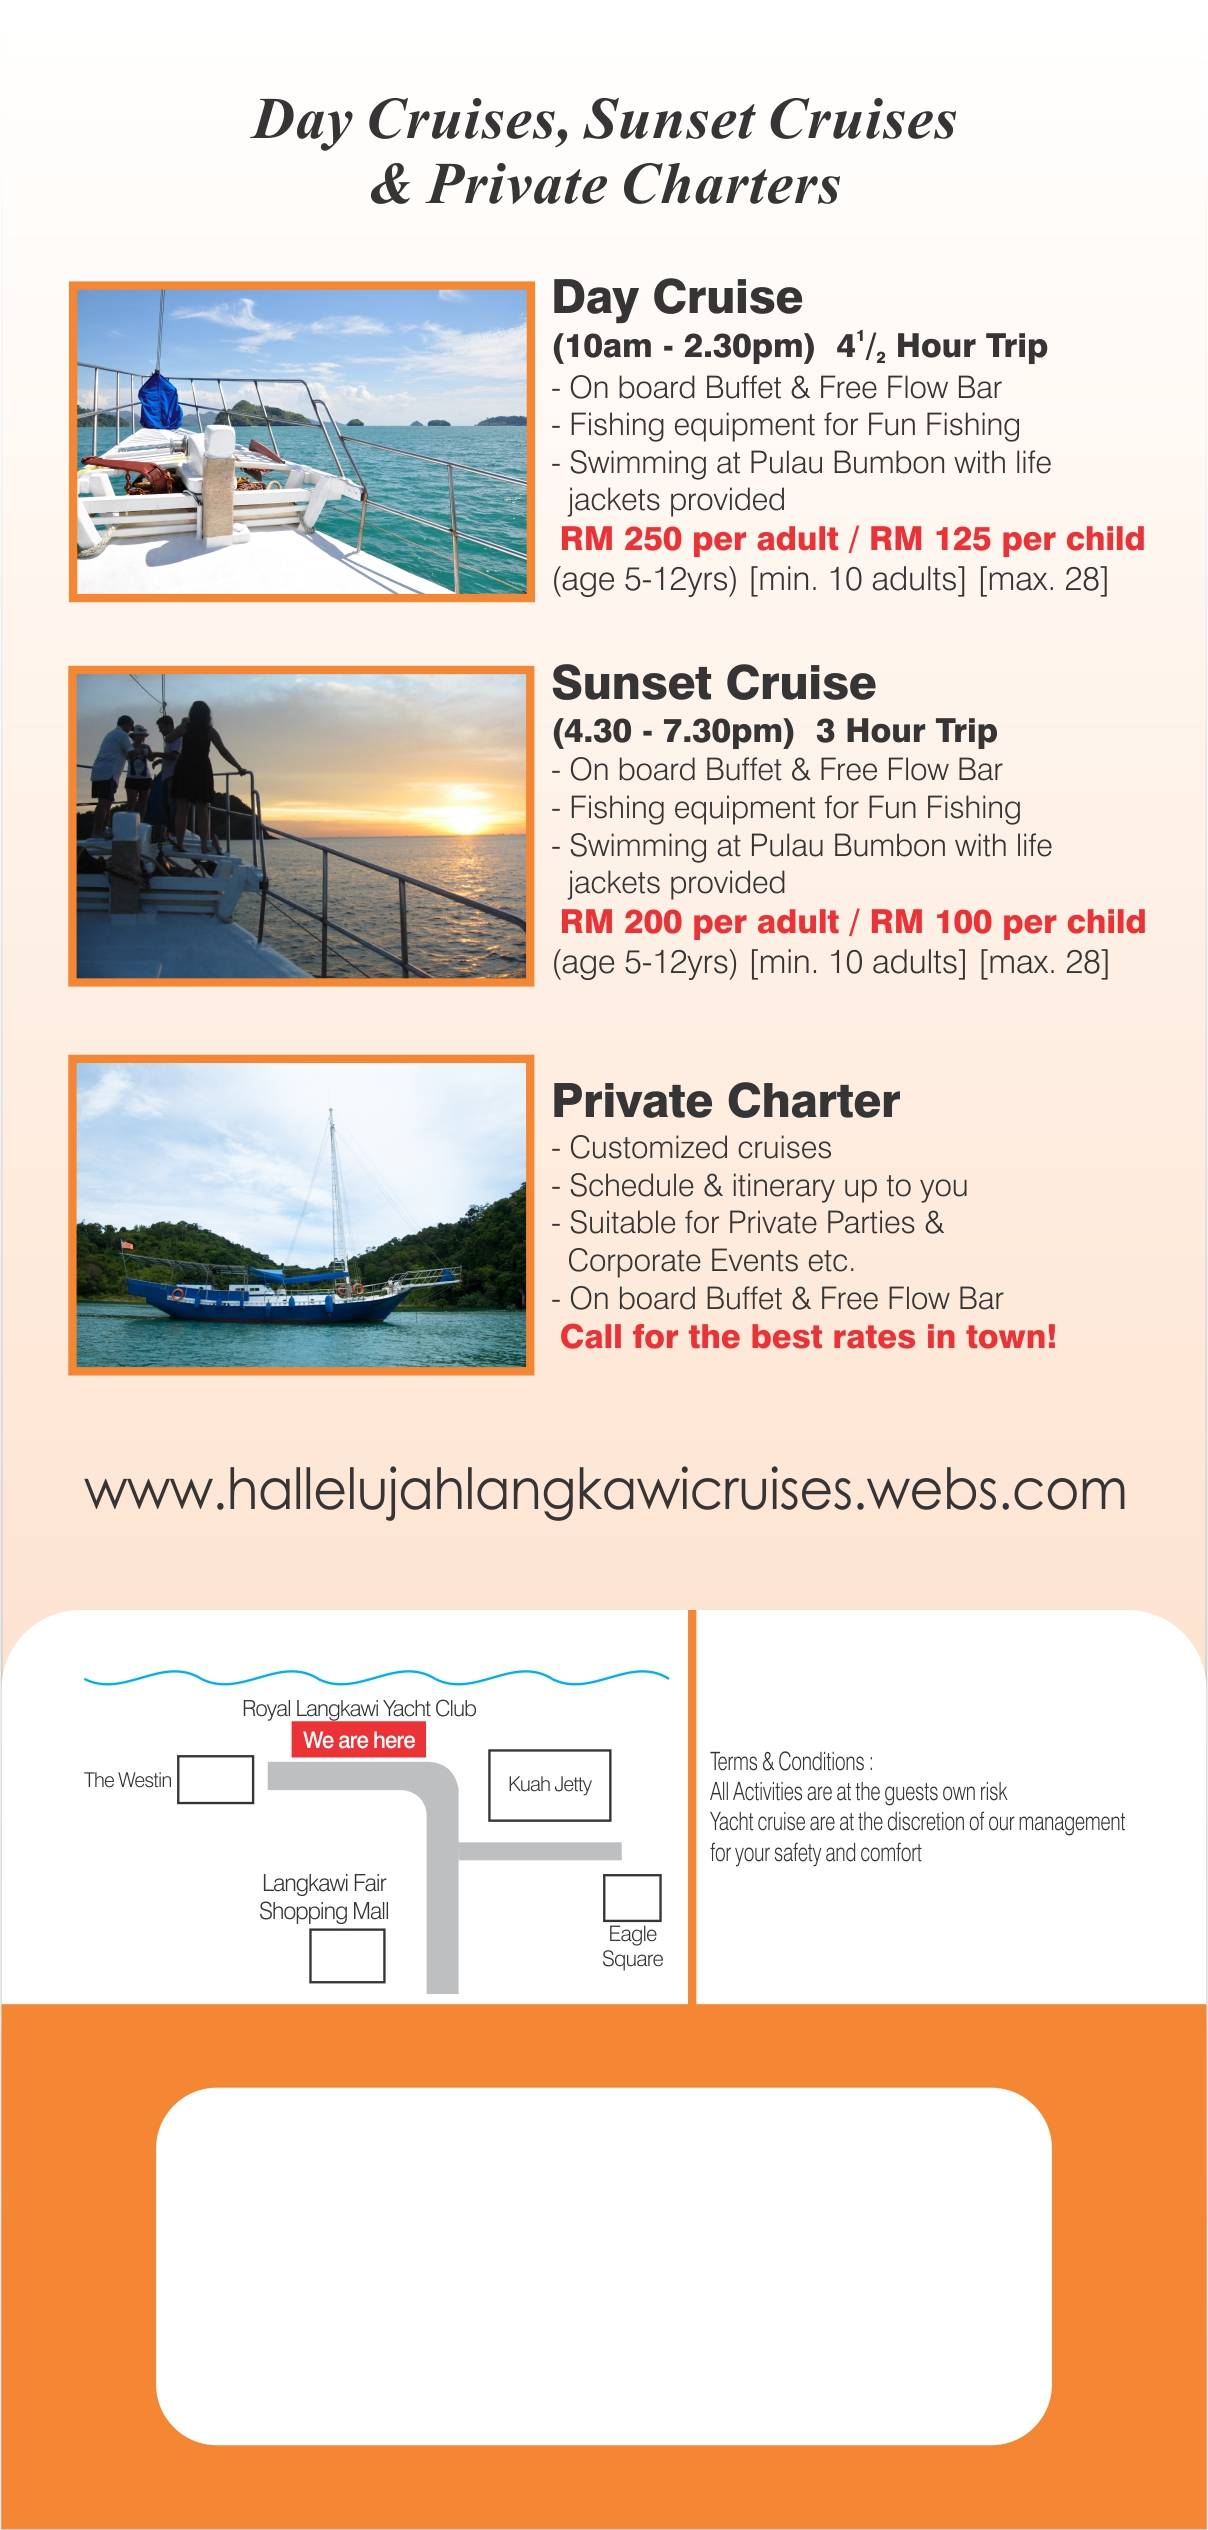 Langkawi Private Charter Yacht Cruises